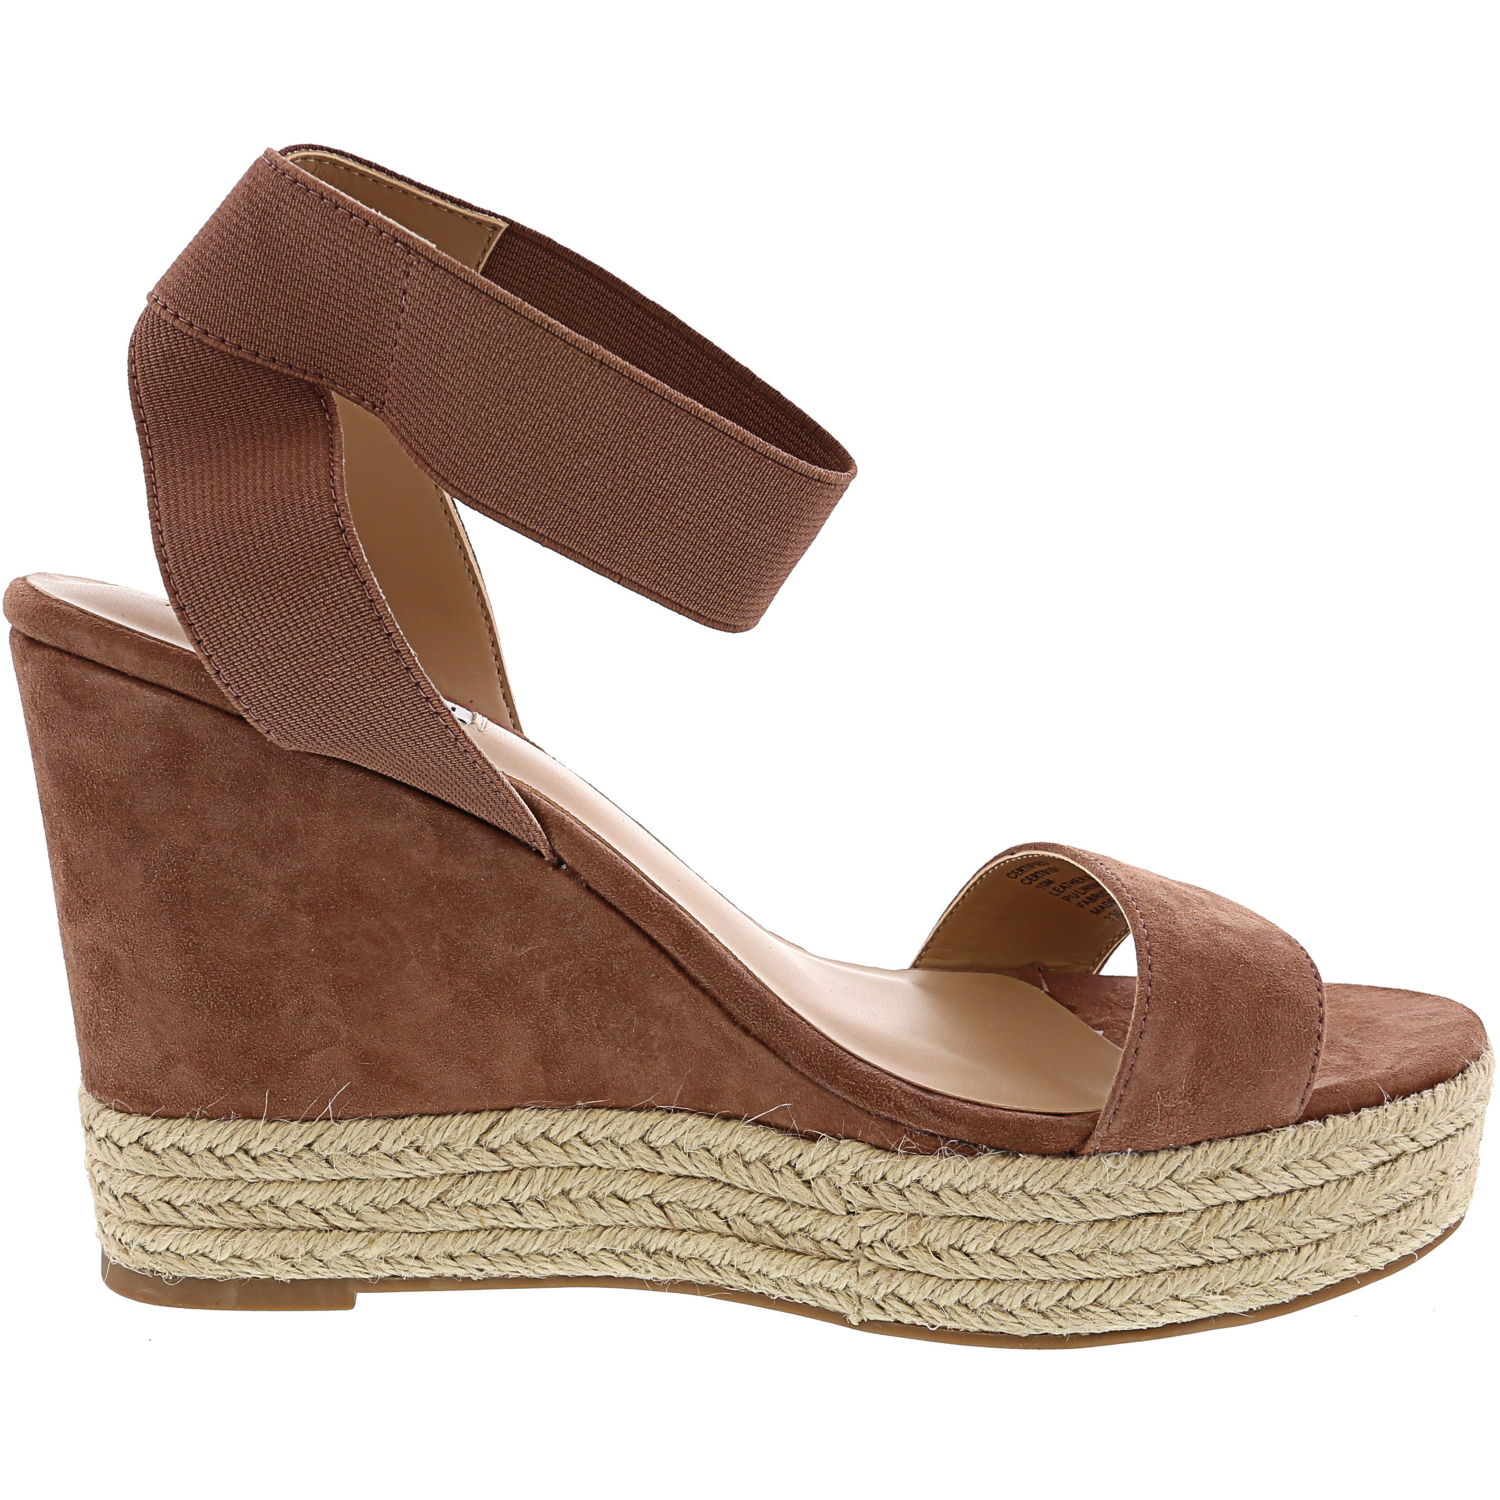 Steve-Madden-Women-039-s-Certified-Suede-Ankle-High-Wedged-Sandal thumbnail 11